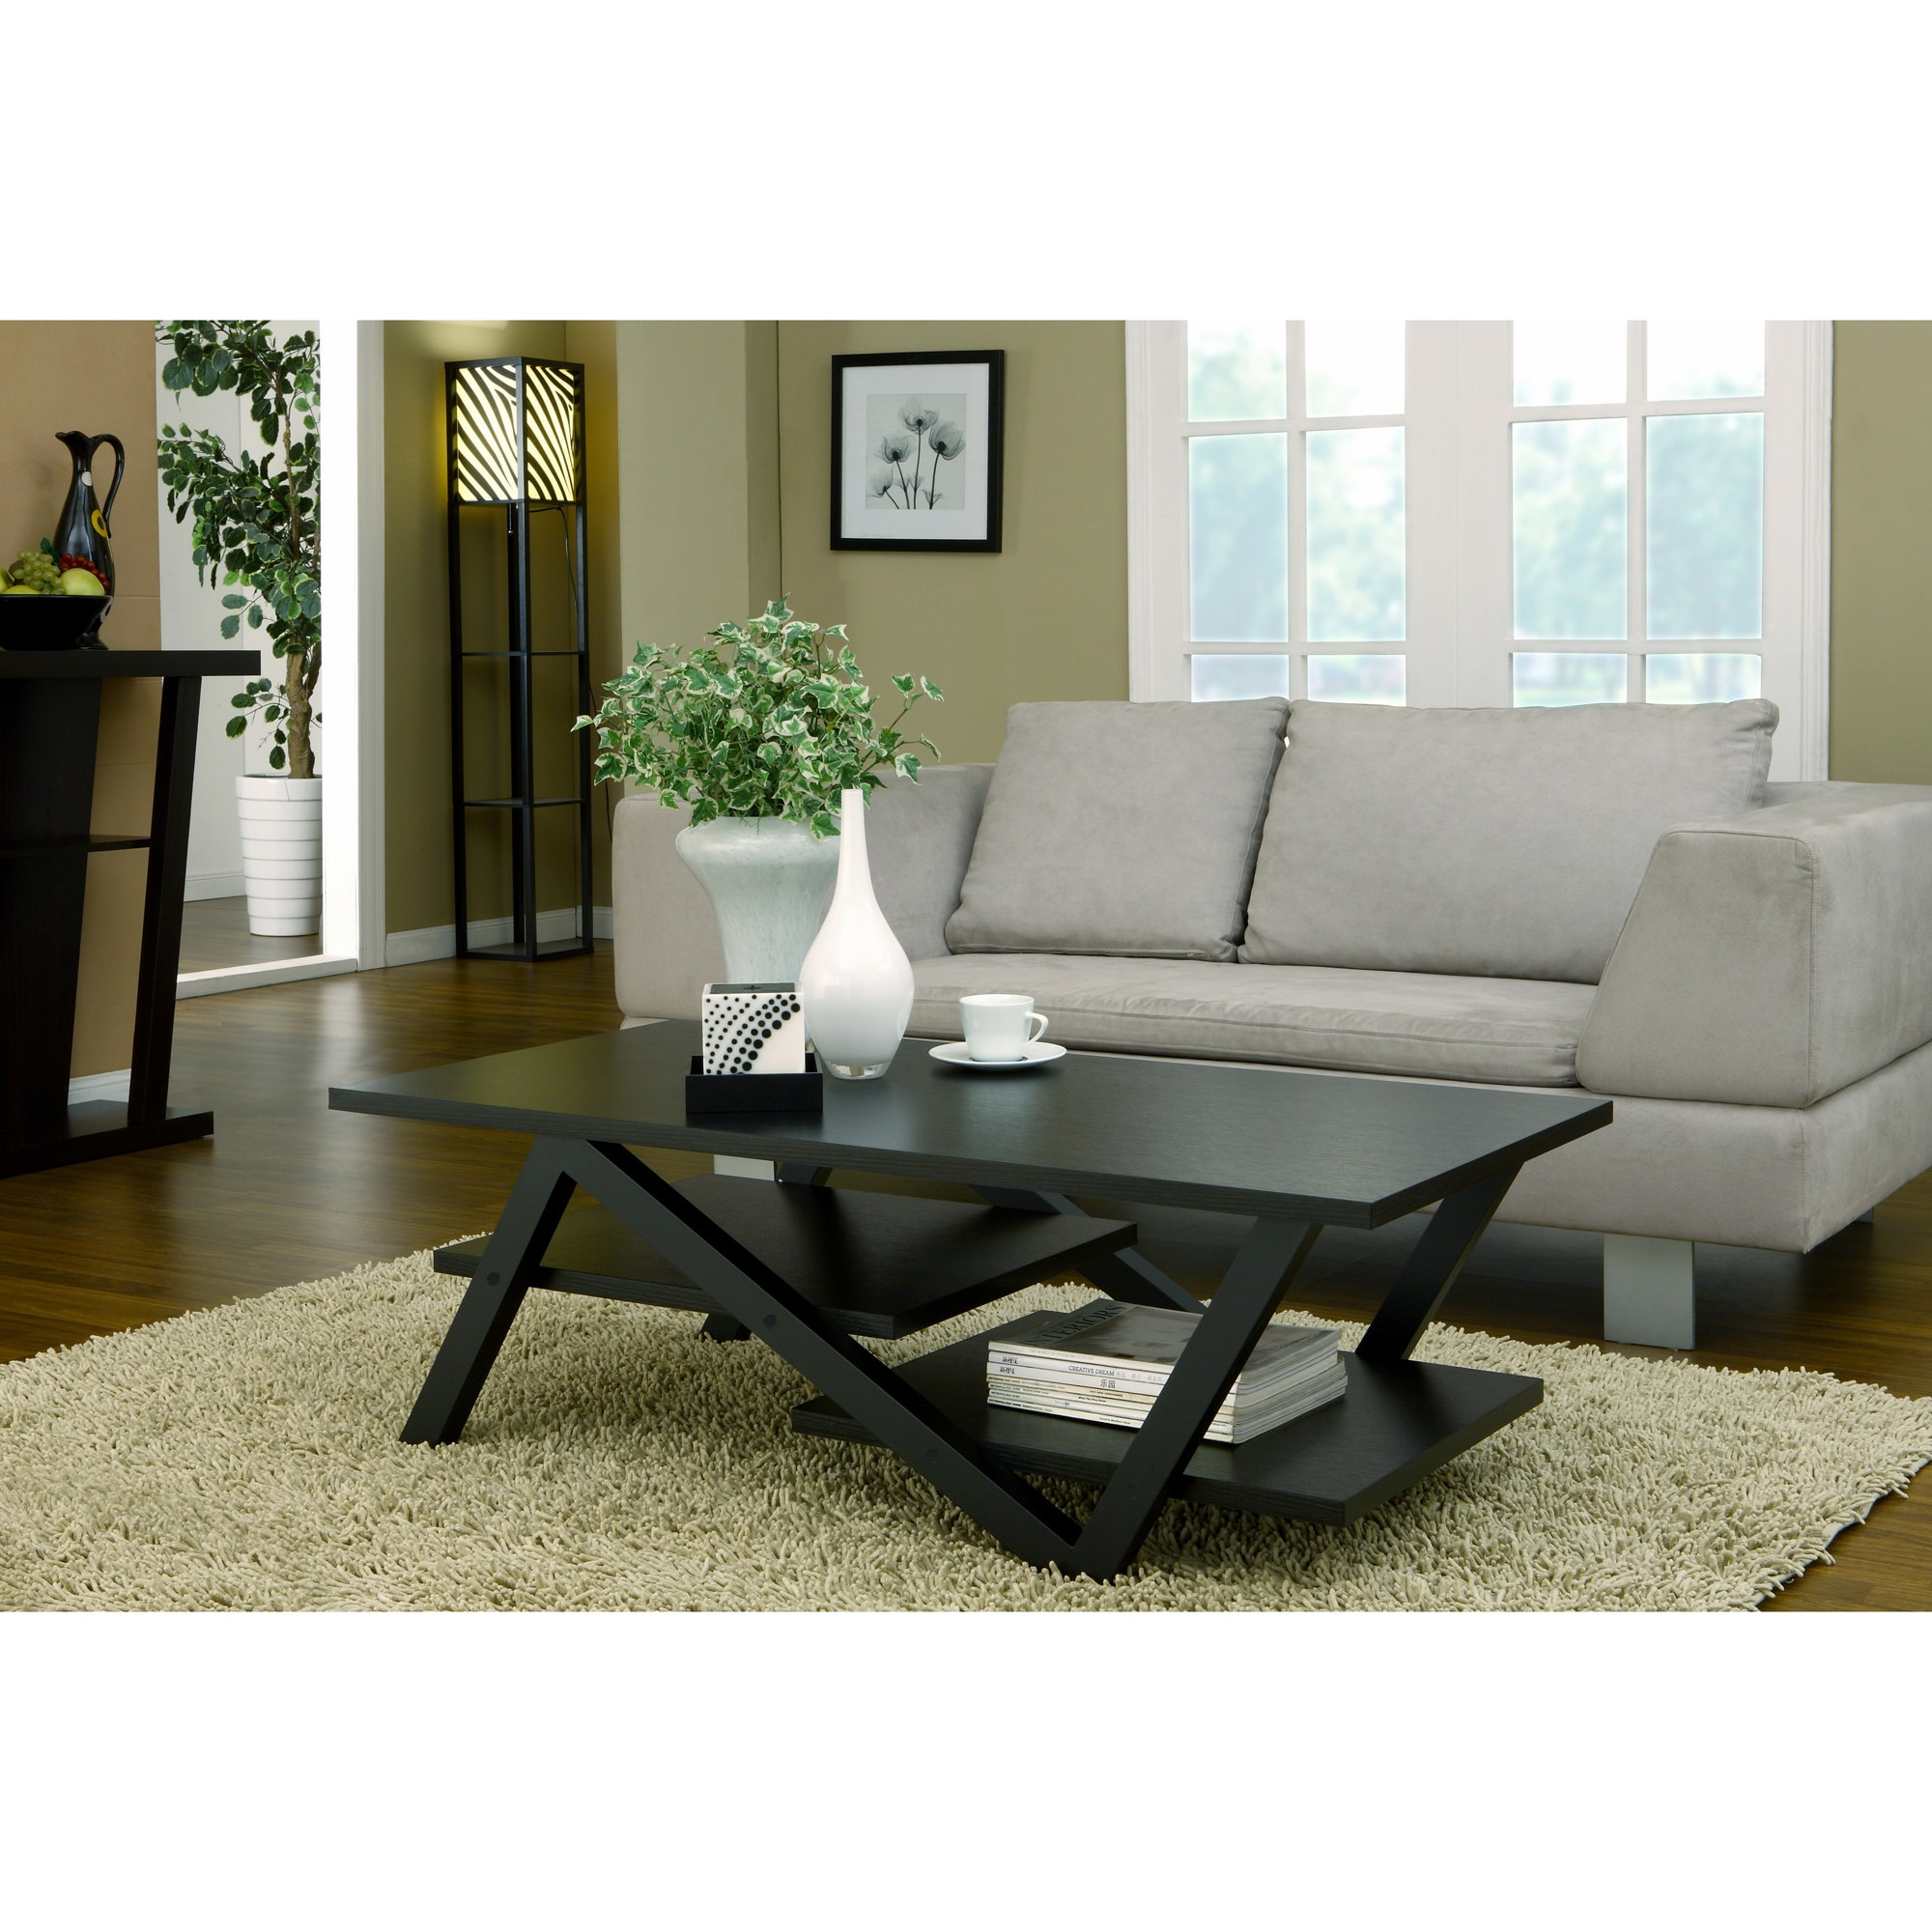 Furniture of america zoe modern rectangular coffee table